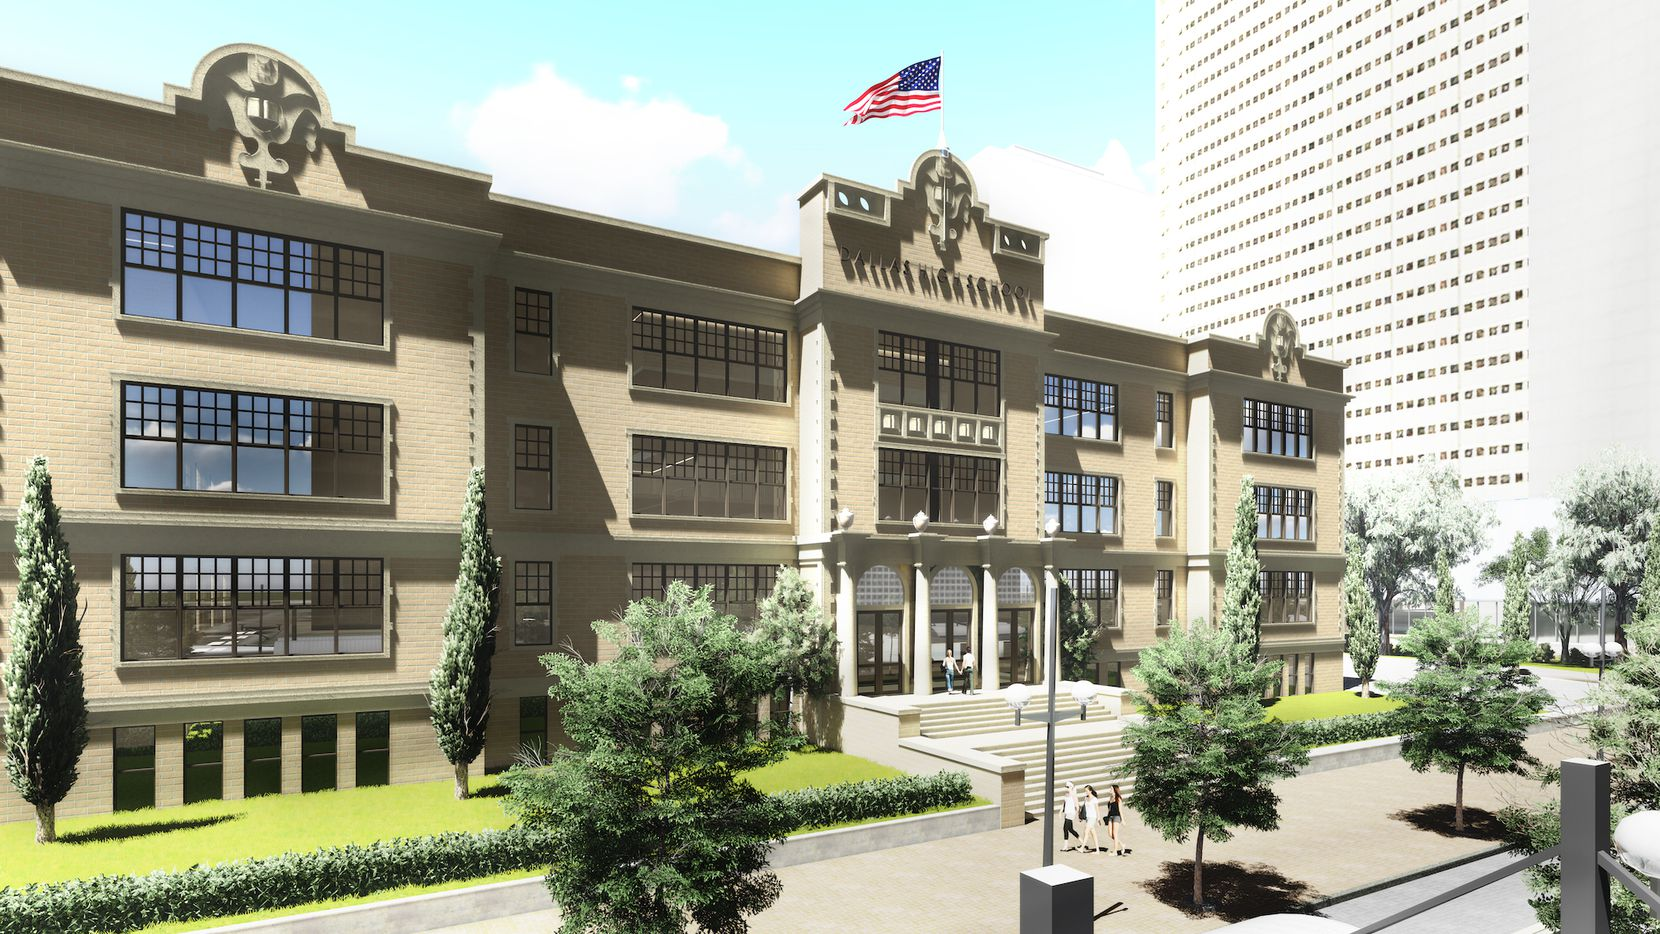 Foundry Club will locate a collaborative office center in the historic Dallas High School in downtown Dallas.